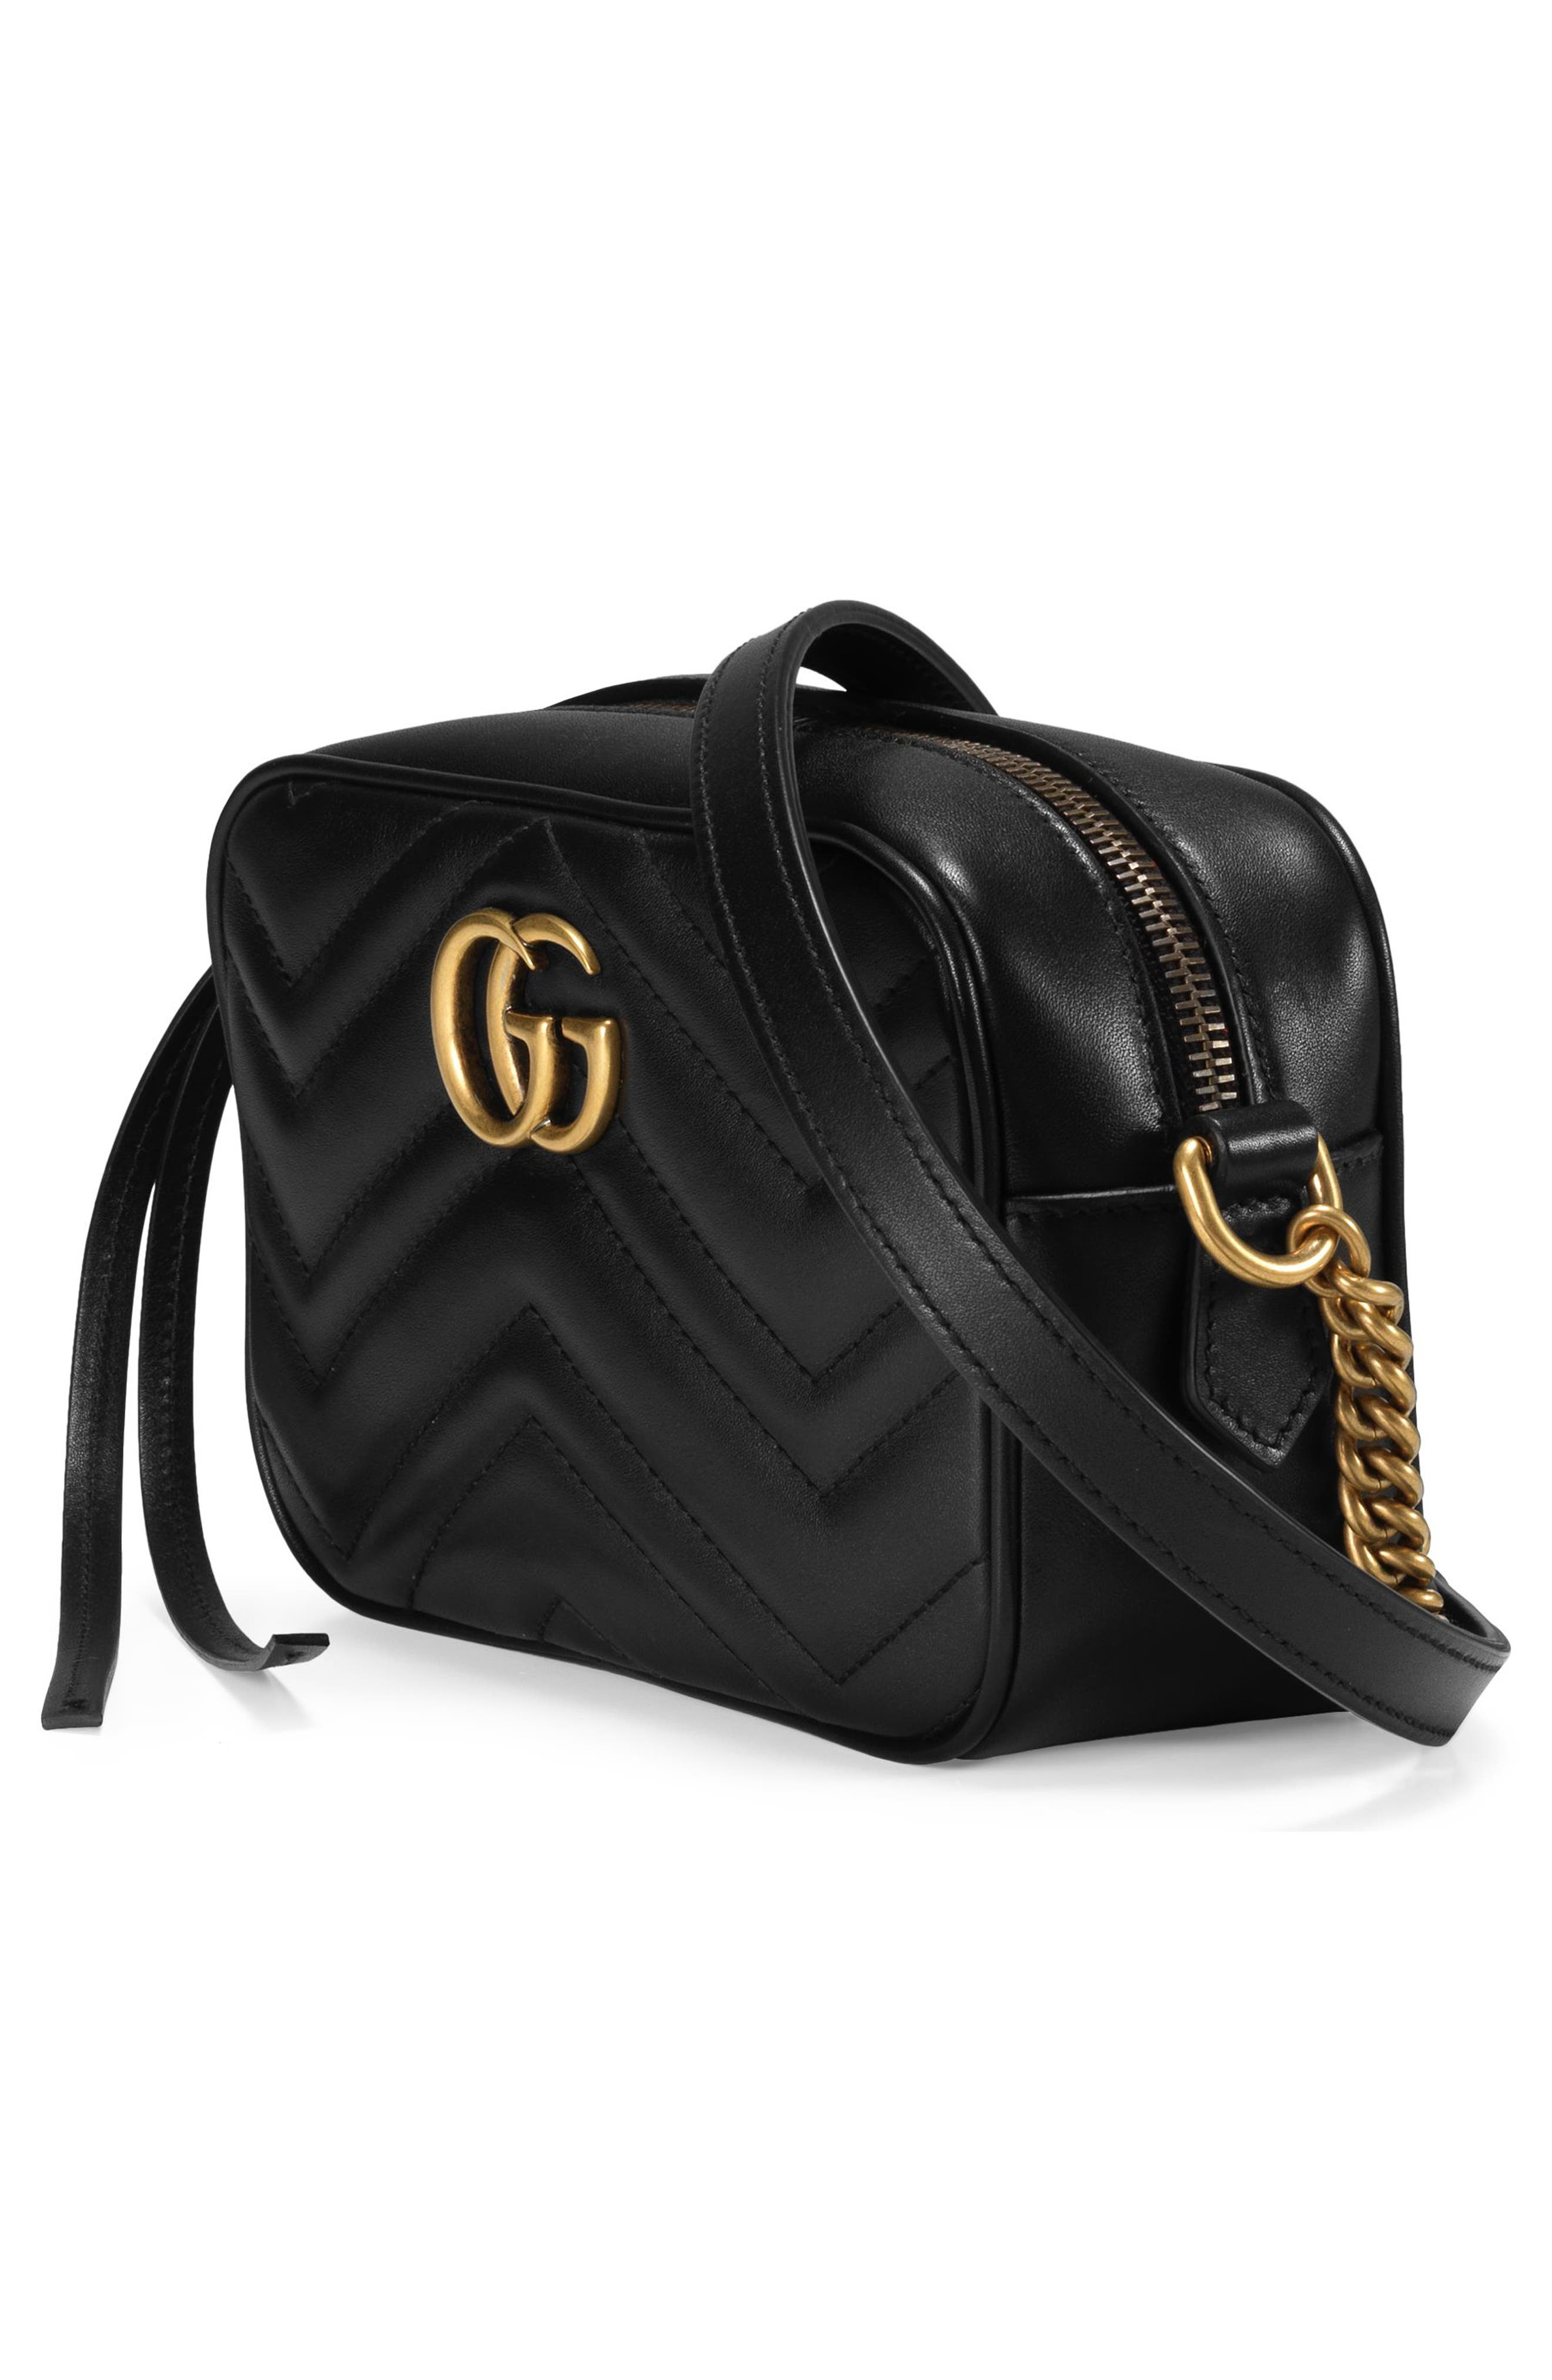 GG Marmont 2.0 Matelassé Leather Shoulder Bag,                             Alternate thumbnail 5, color,                             NERO